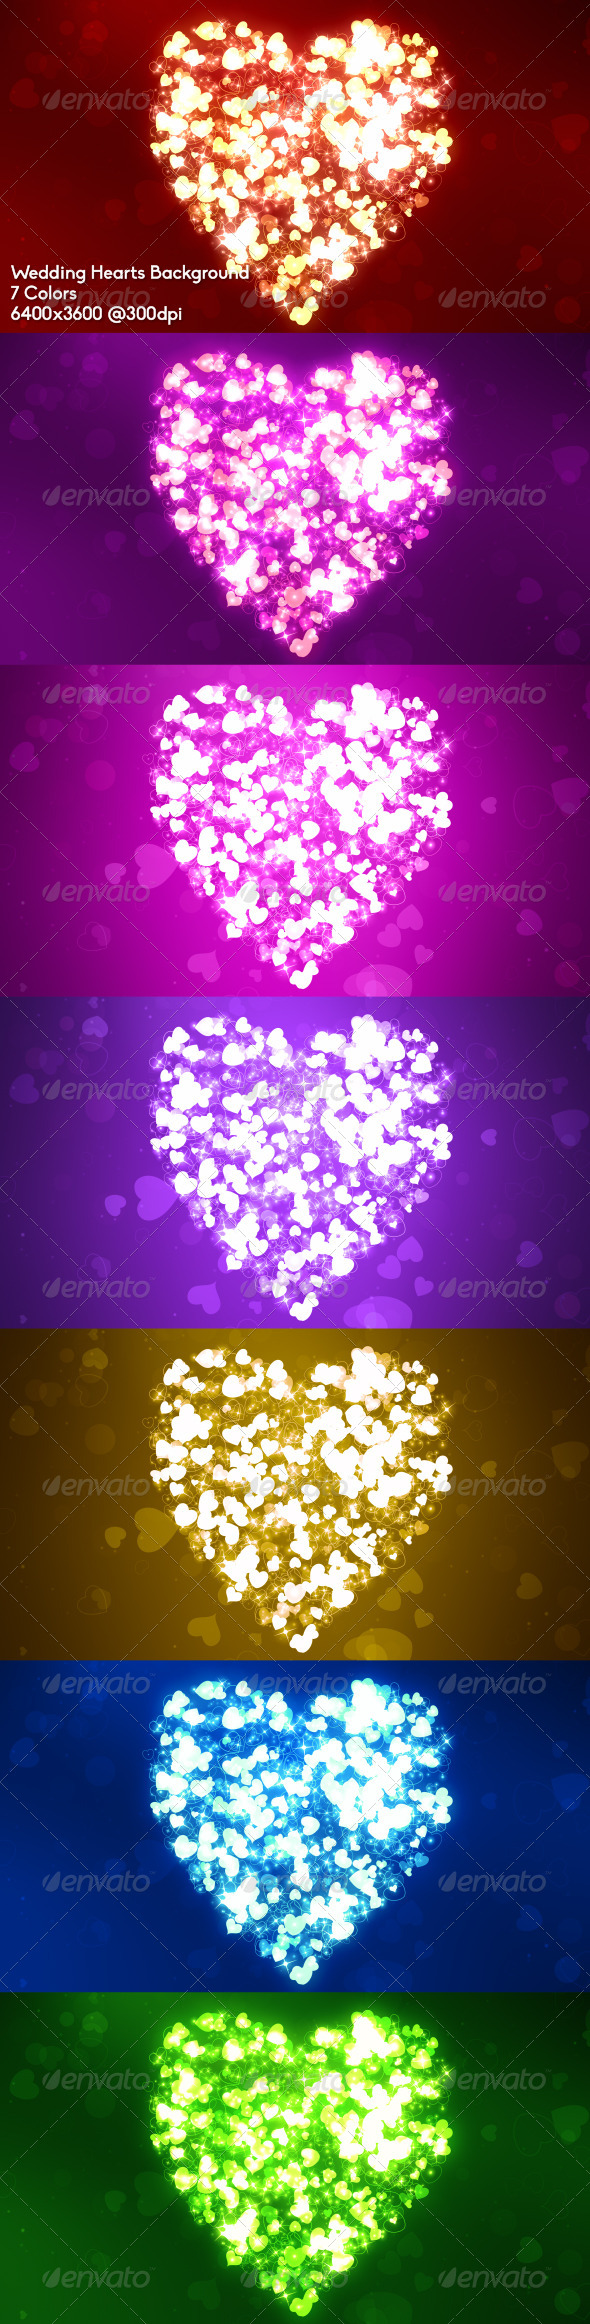 Wedding Hearts Background - Abstract Backgrounds